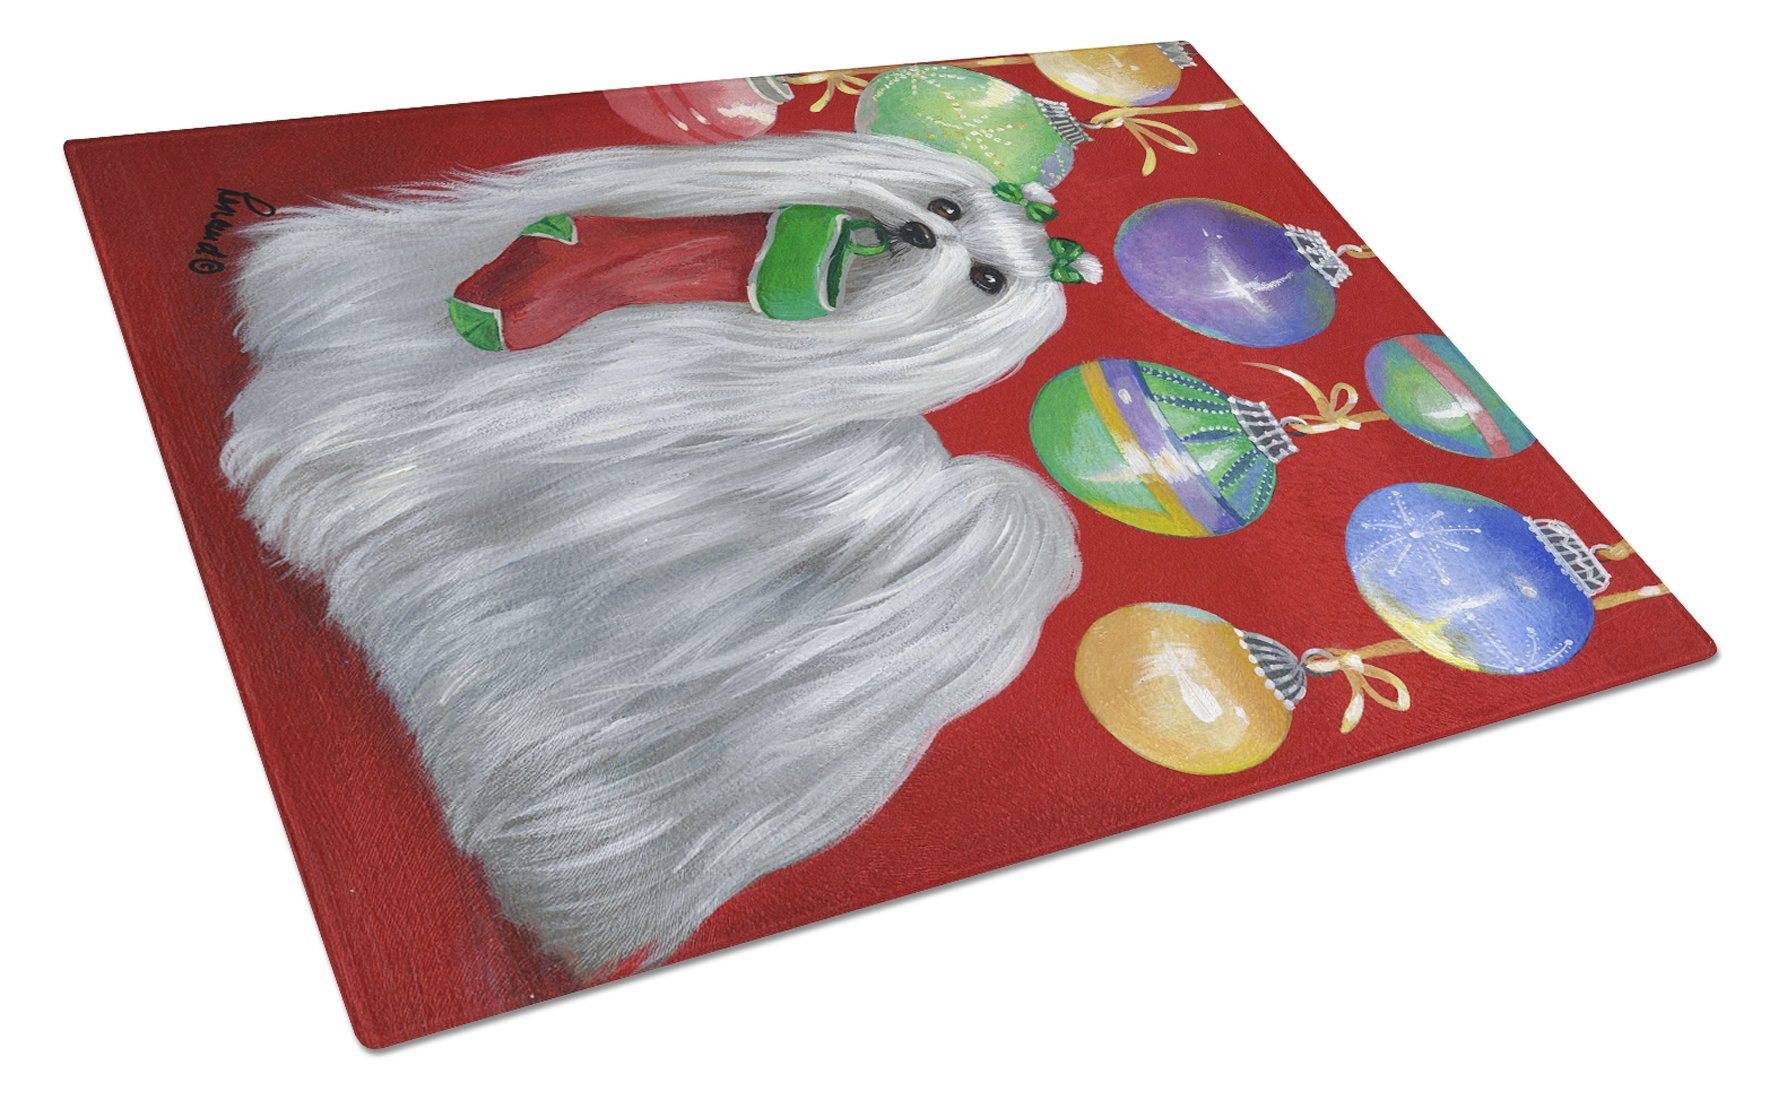 Maltese Christmas Stocking Stuffer Glass Cutting Board Large PPP3114LCB by Caroline's Treasures